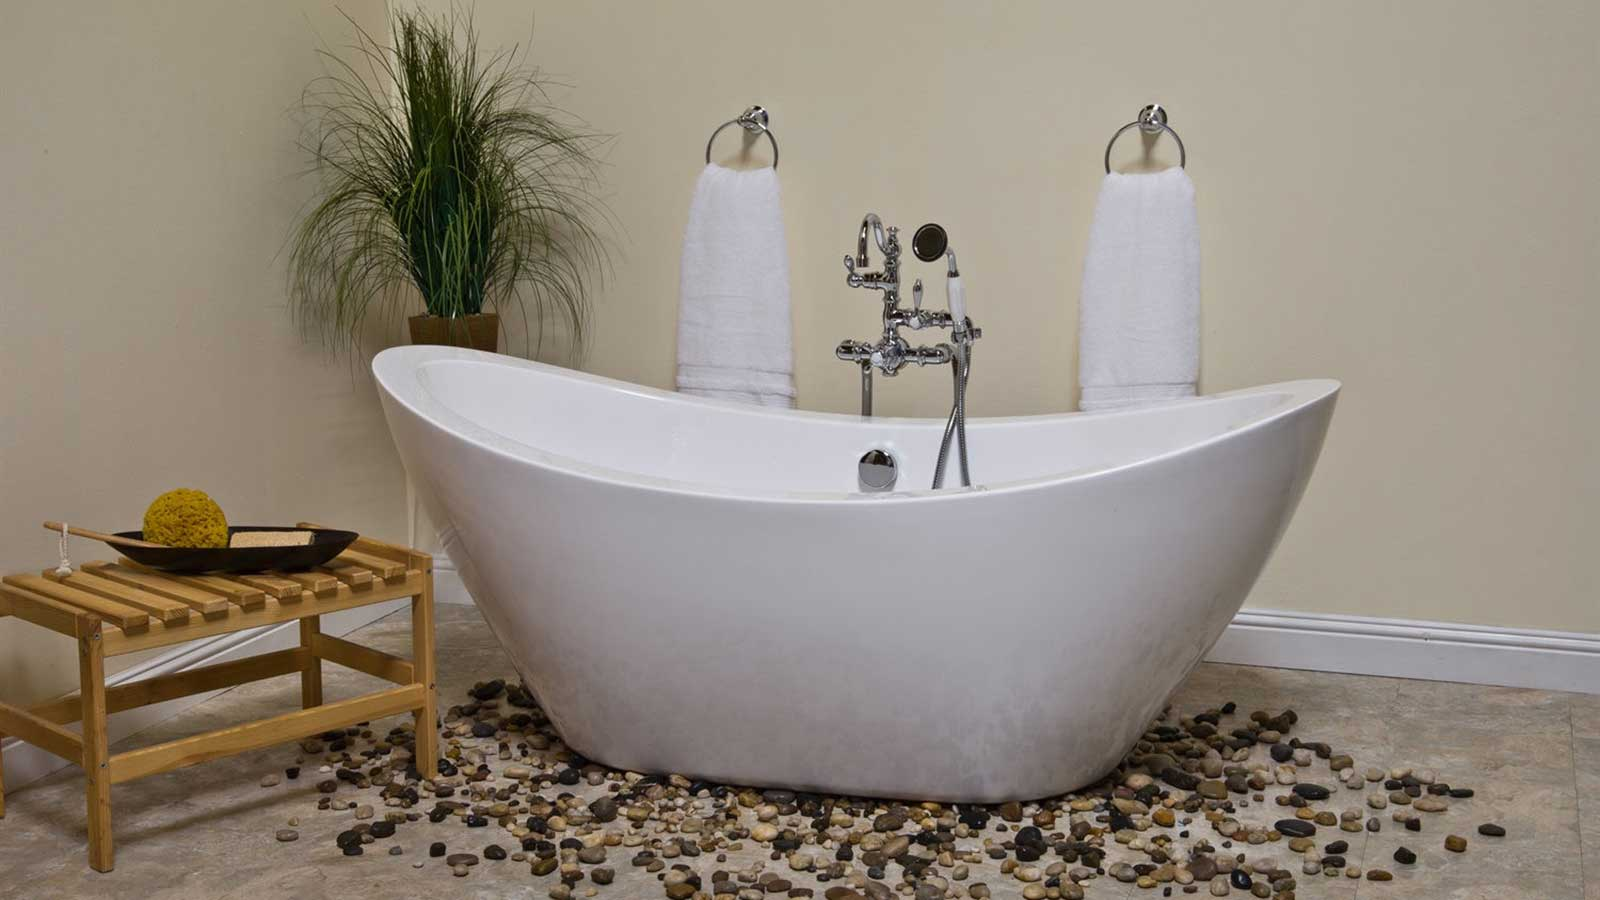 Pics Of Bathtubs Bathtub Materials They Make A Difference